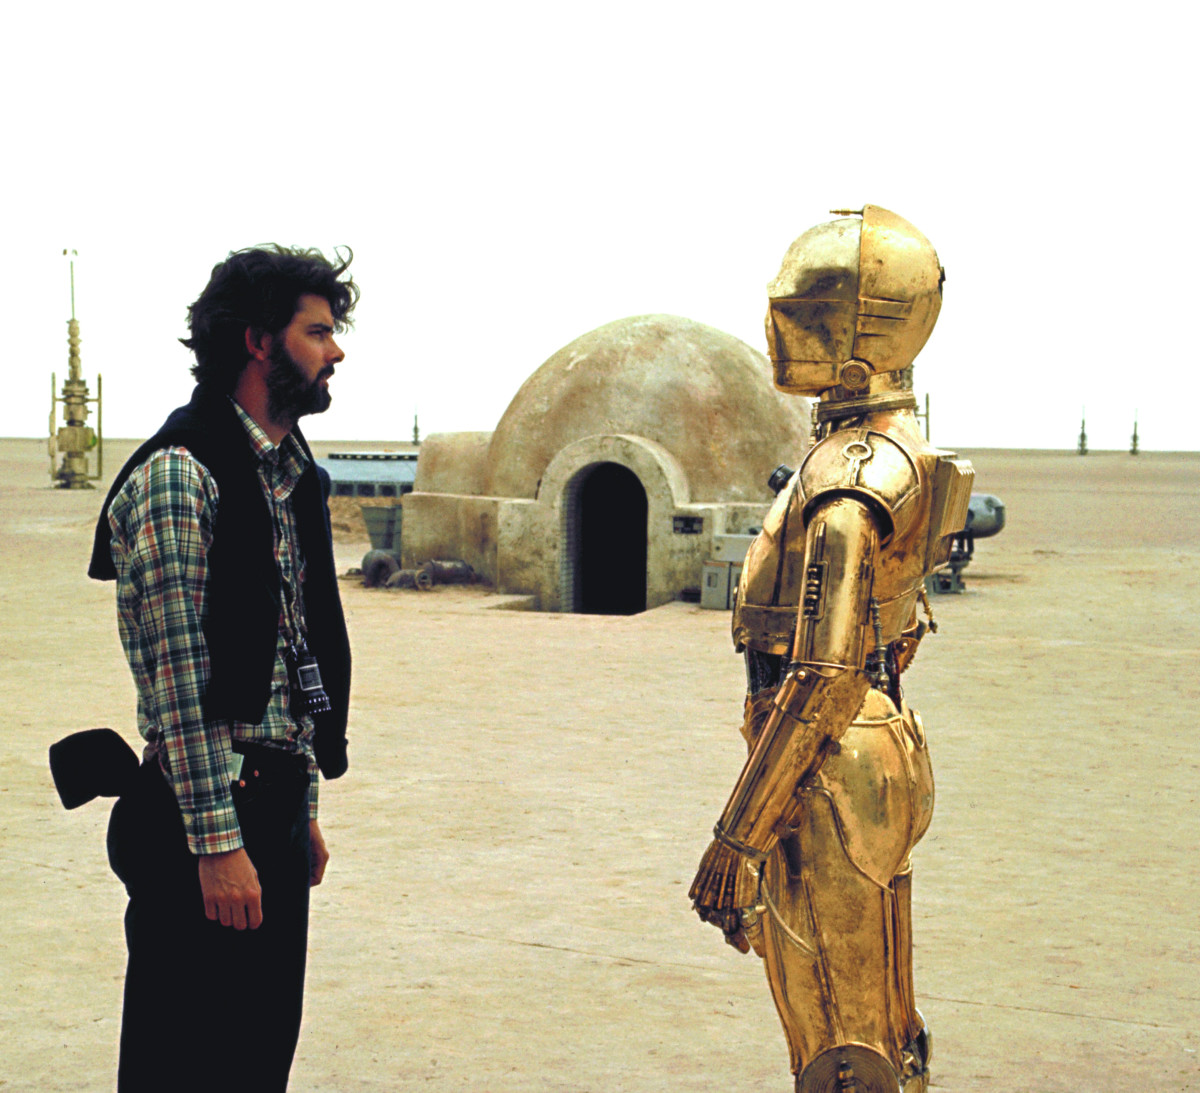 George Lucas with C-3PO on the set of Star Wars Episode IV - A New Hope